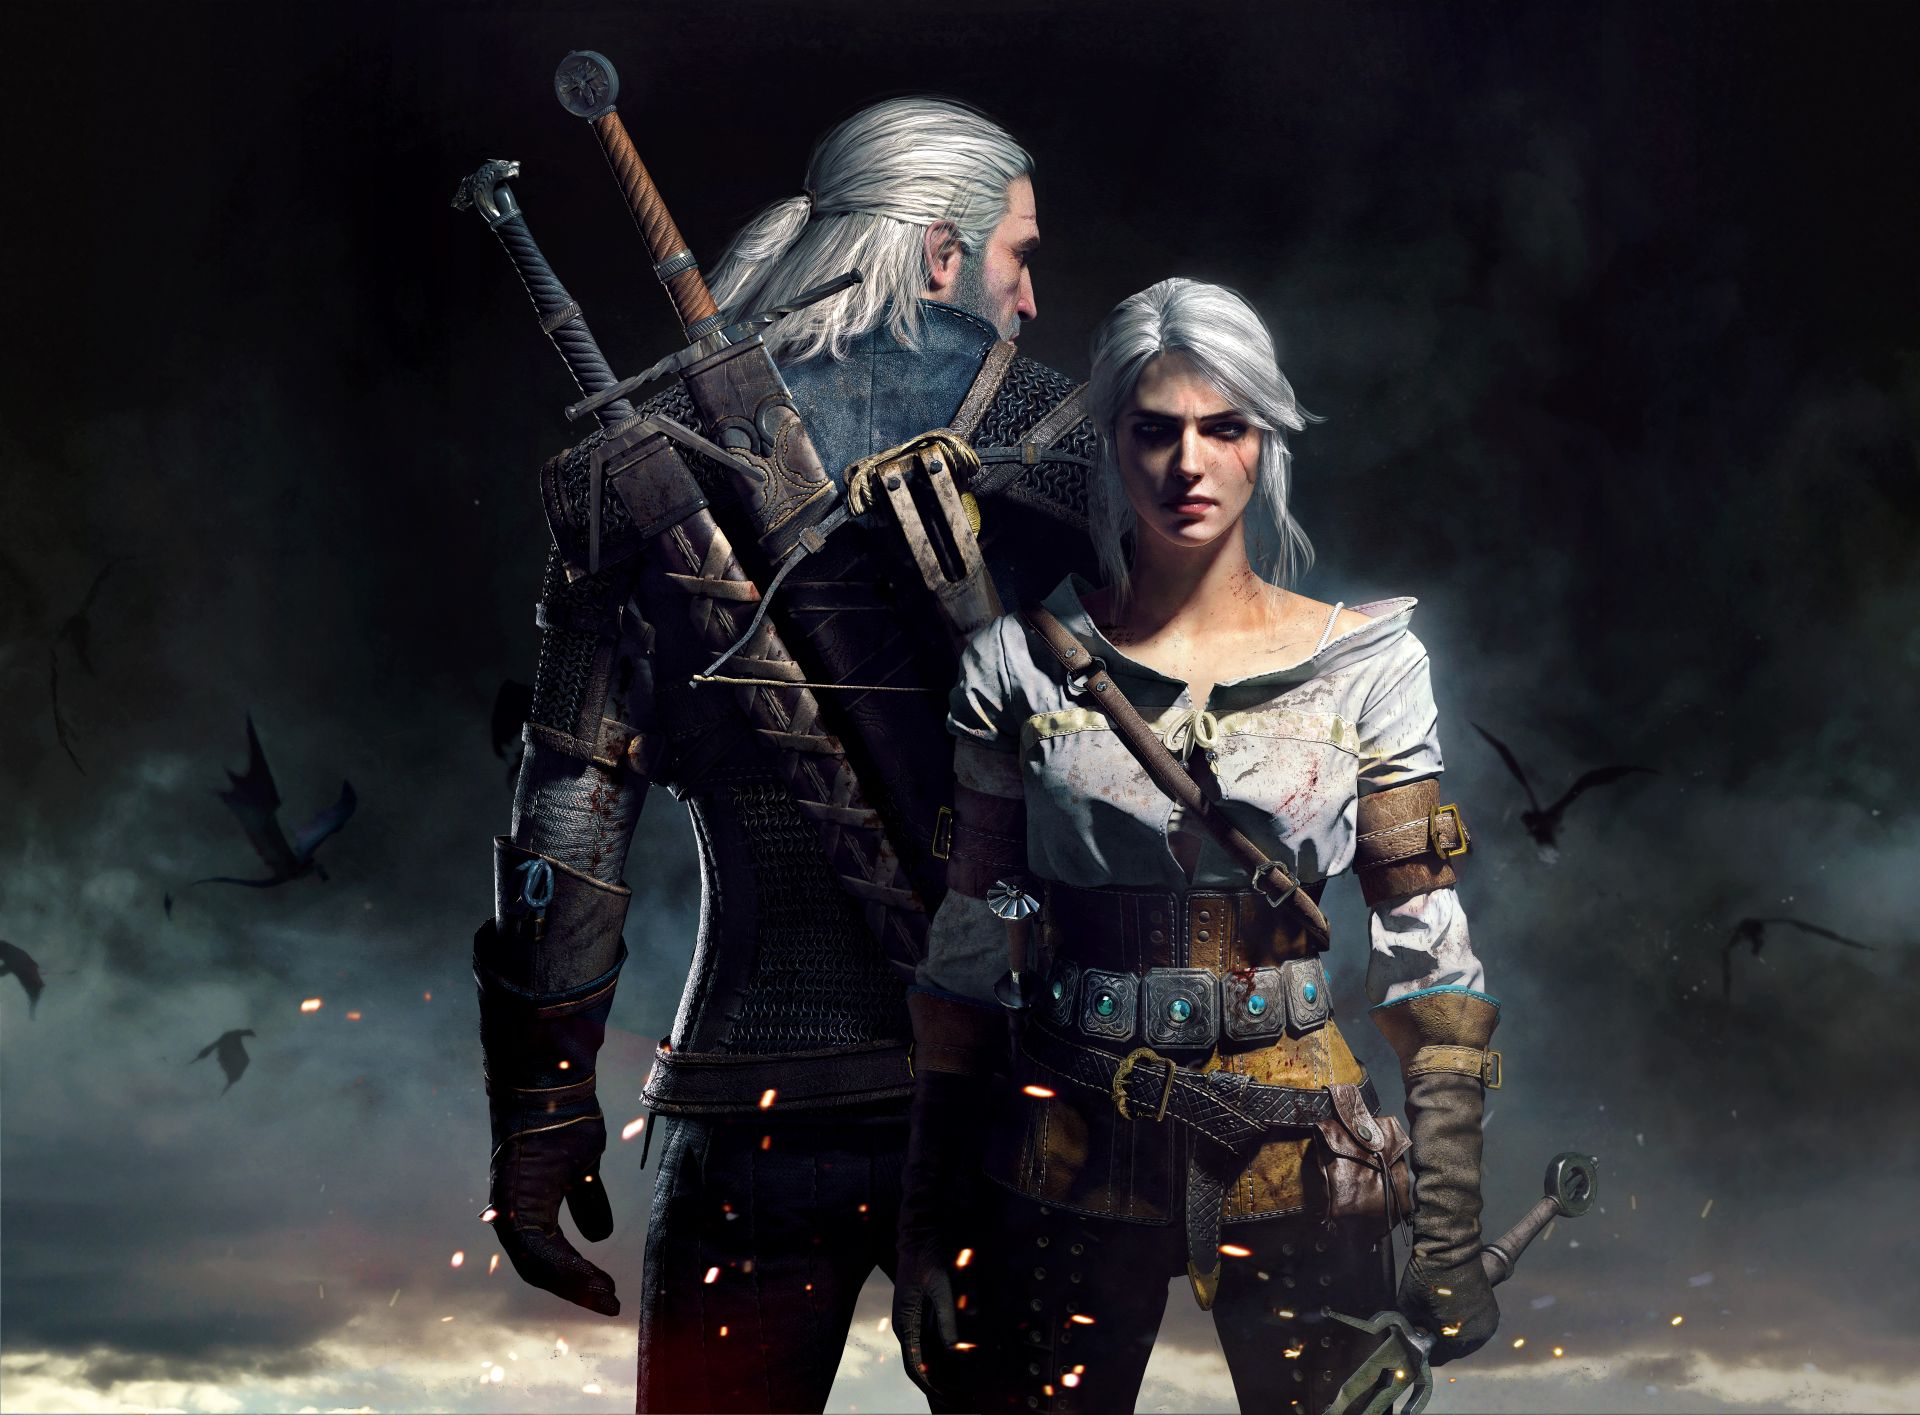 The Witcher, Download Wallpaper